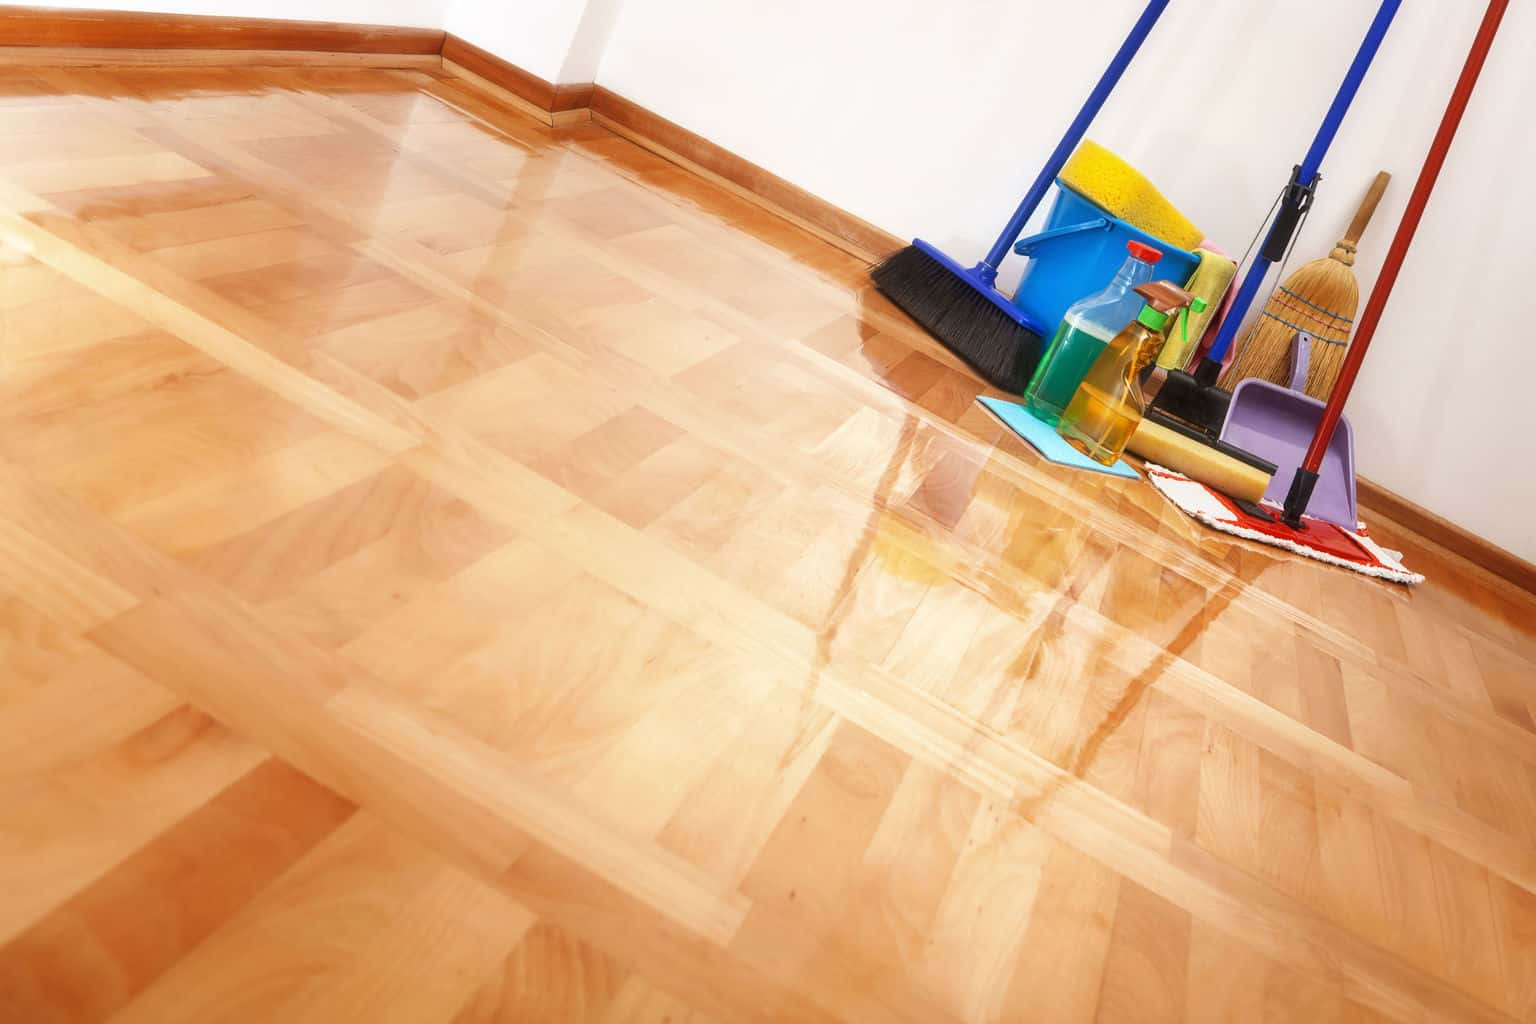 steps with polish clean pictures floors how wikihow to step wood version floor